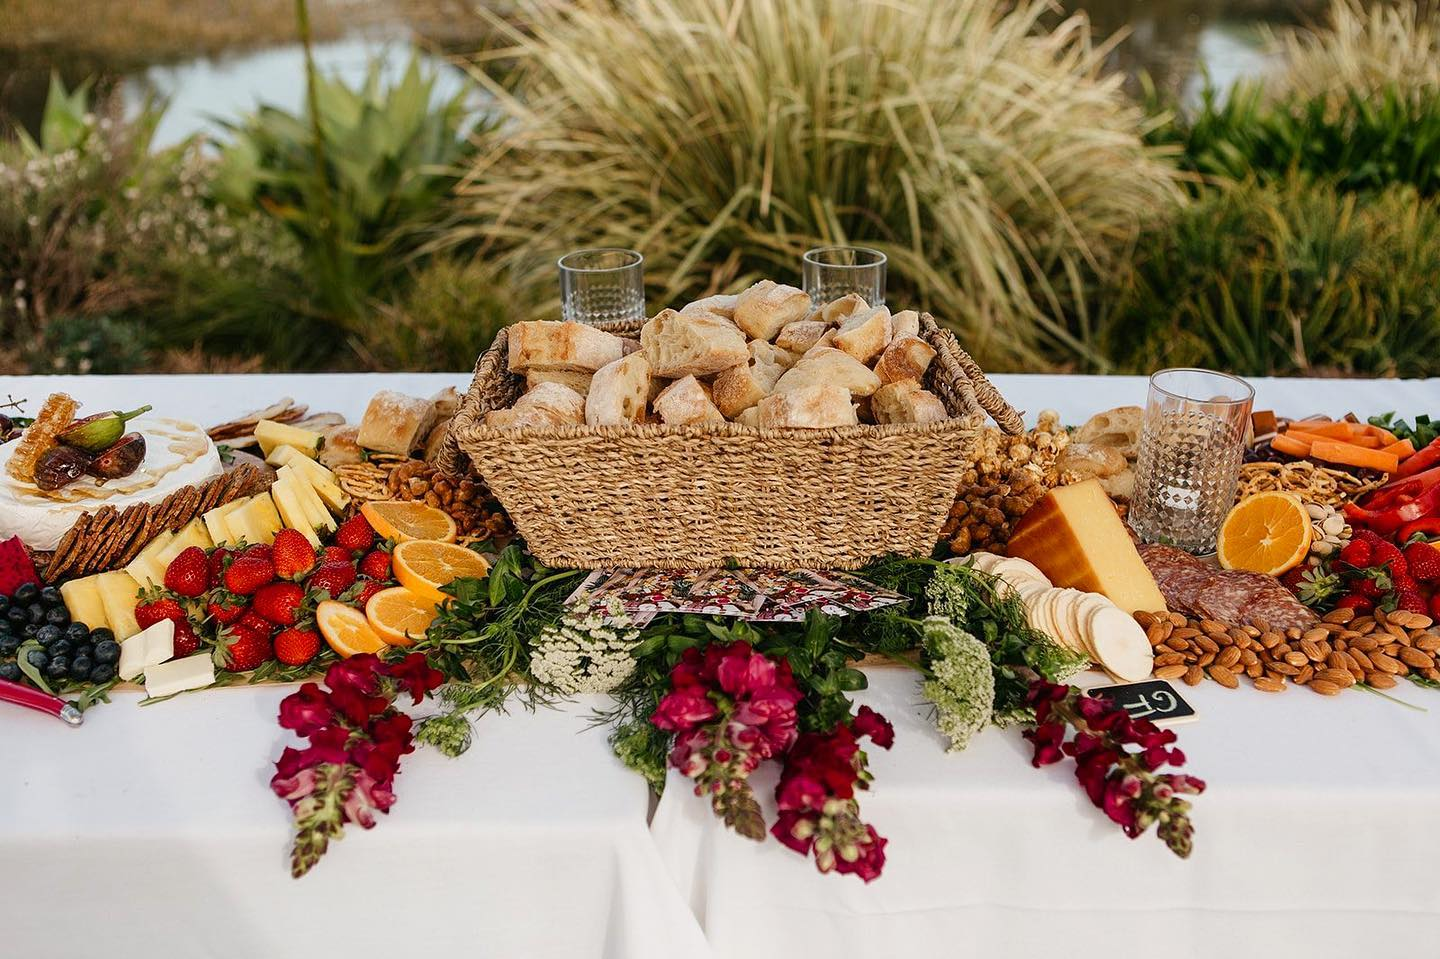 image by stories by ash photography byron bay wedding grazing tables catering boards food